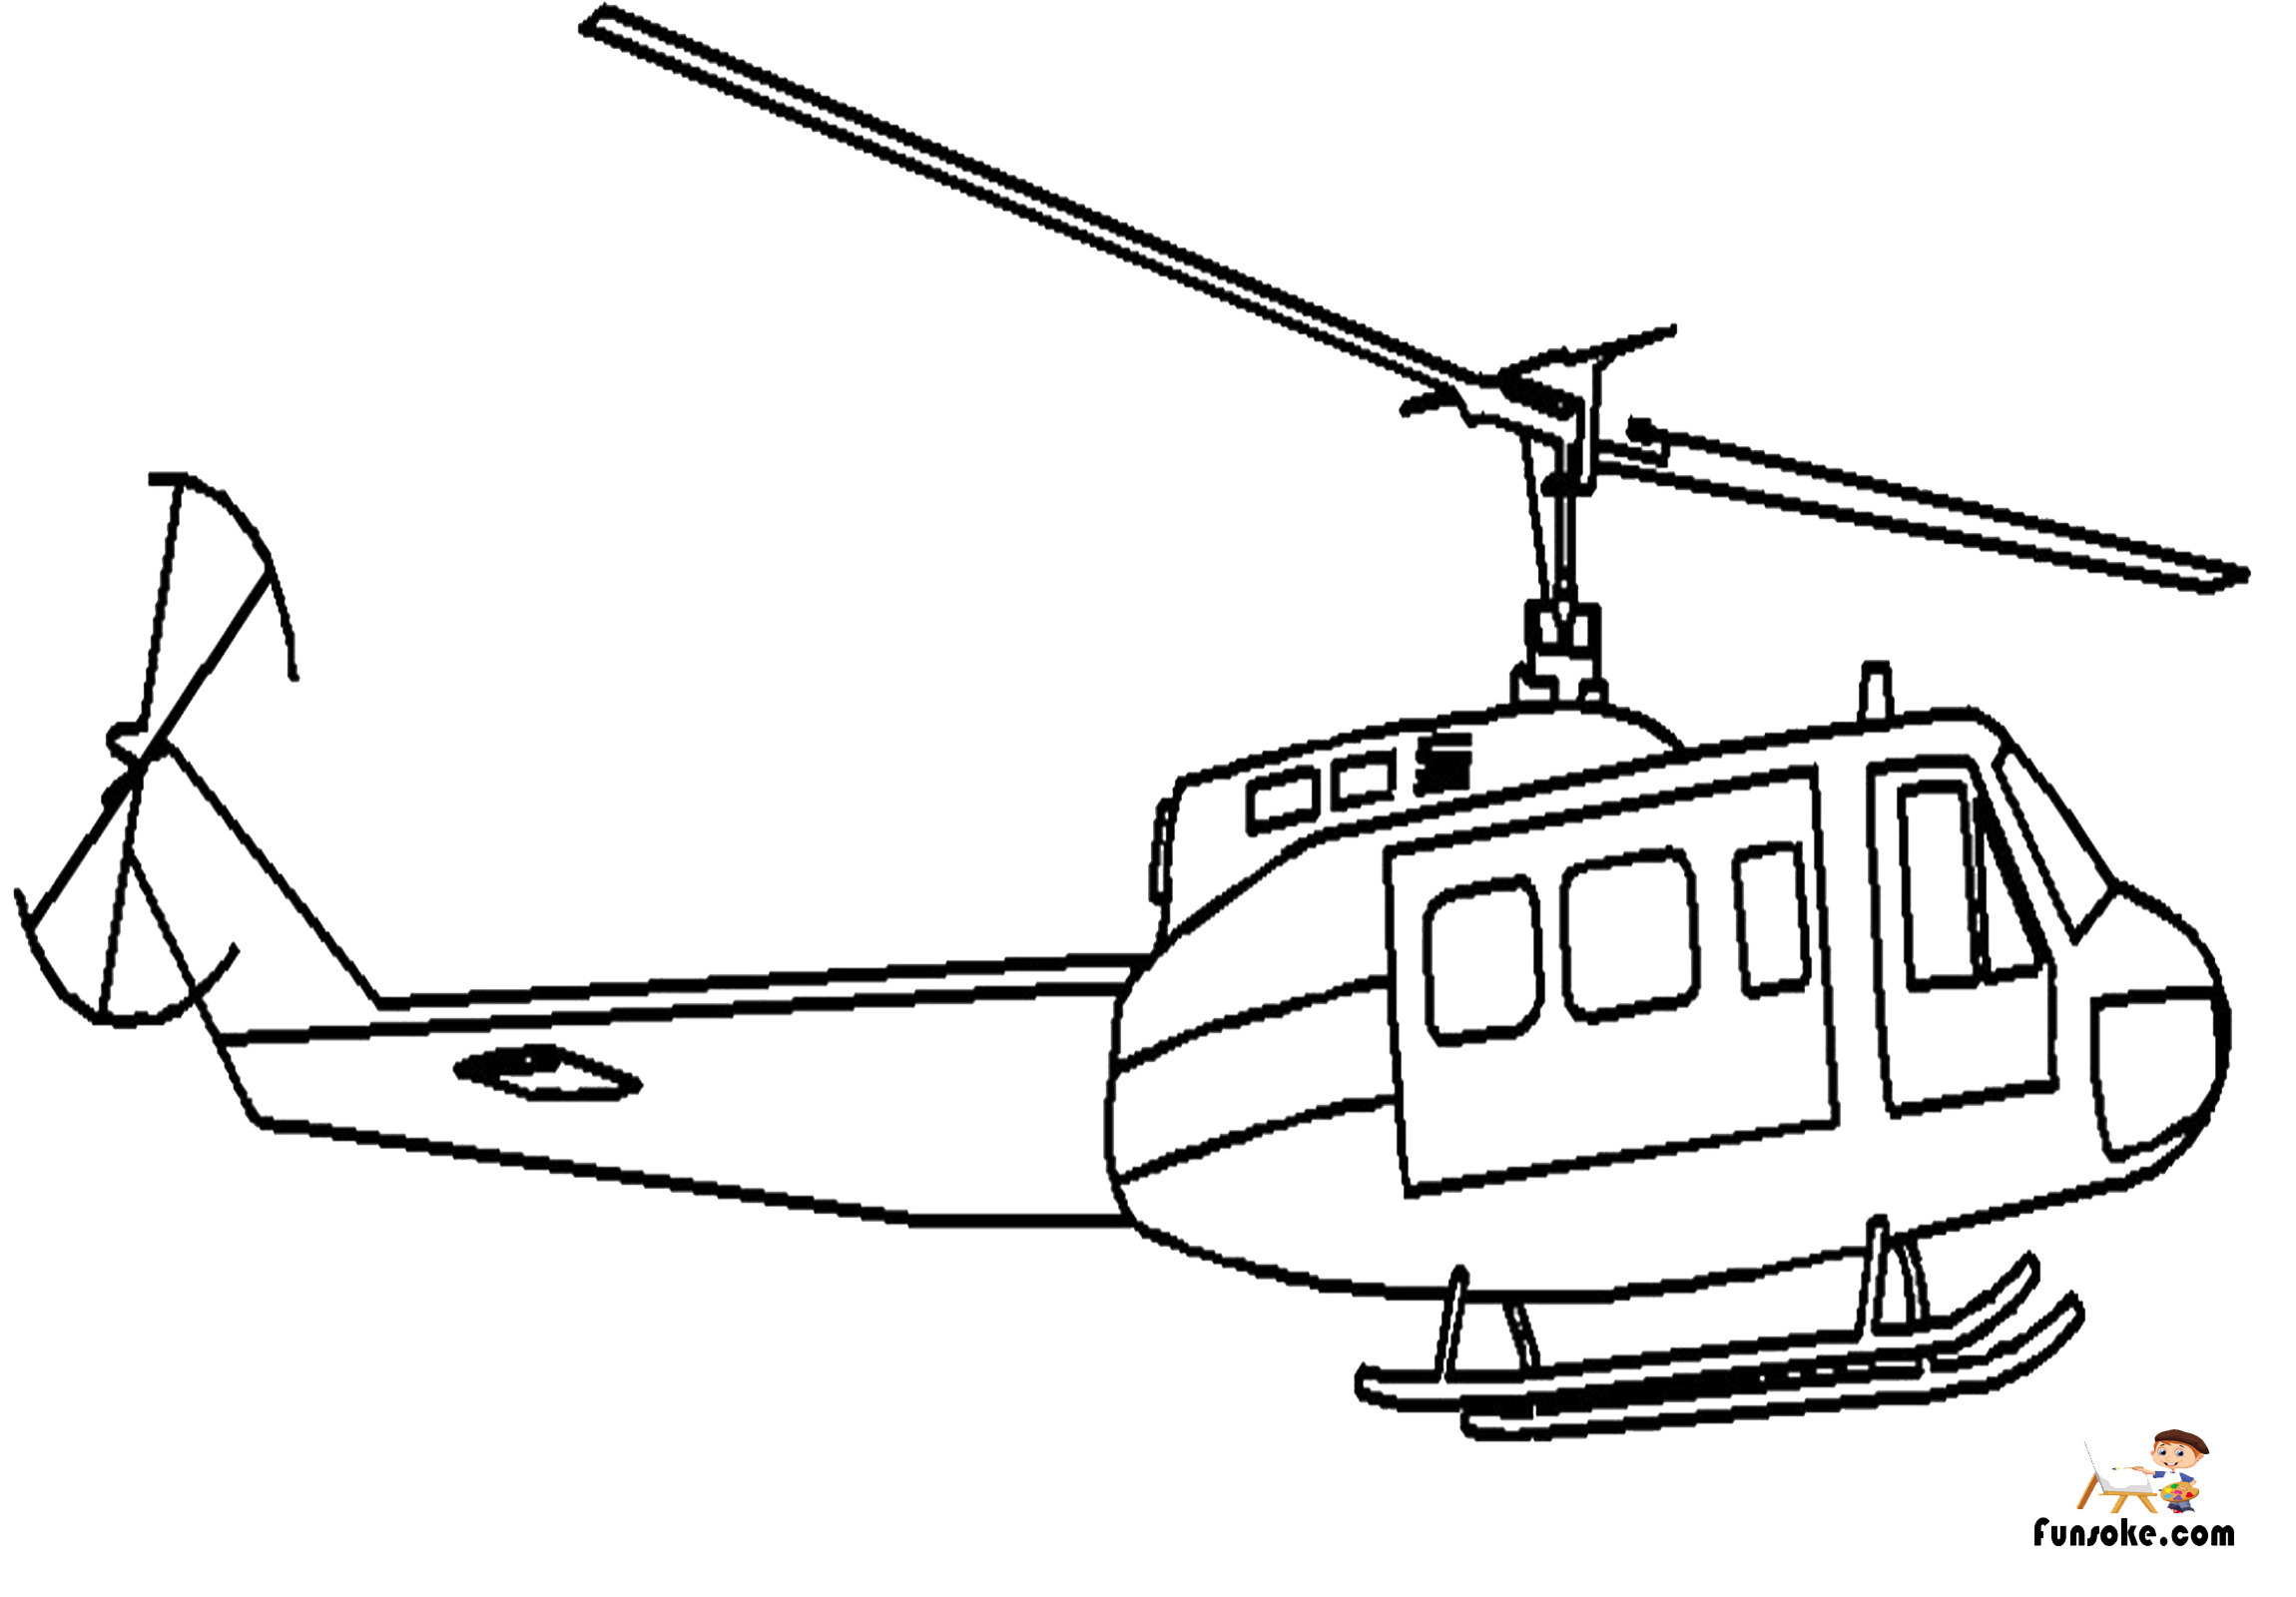 helicopter colouring pictures coloring pages helicopters airplanes funsoke colouring helicopter pictures